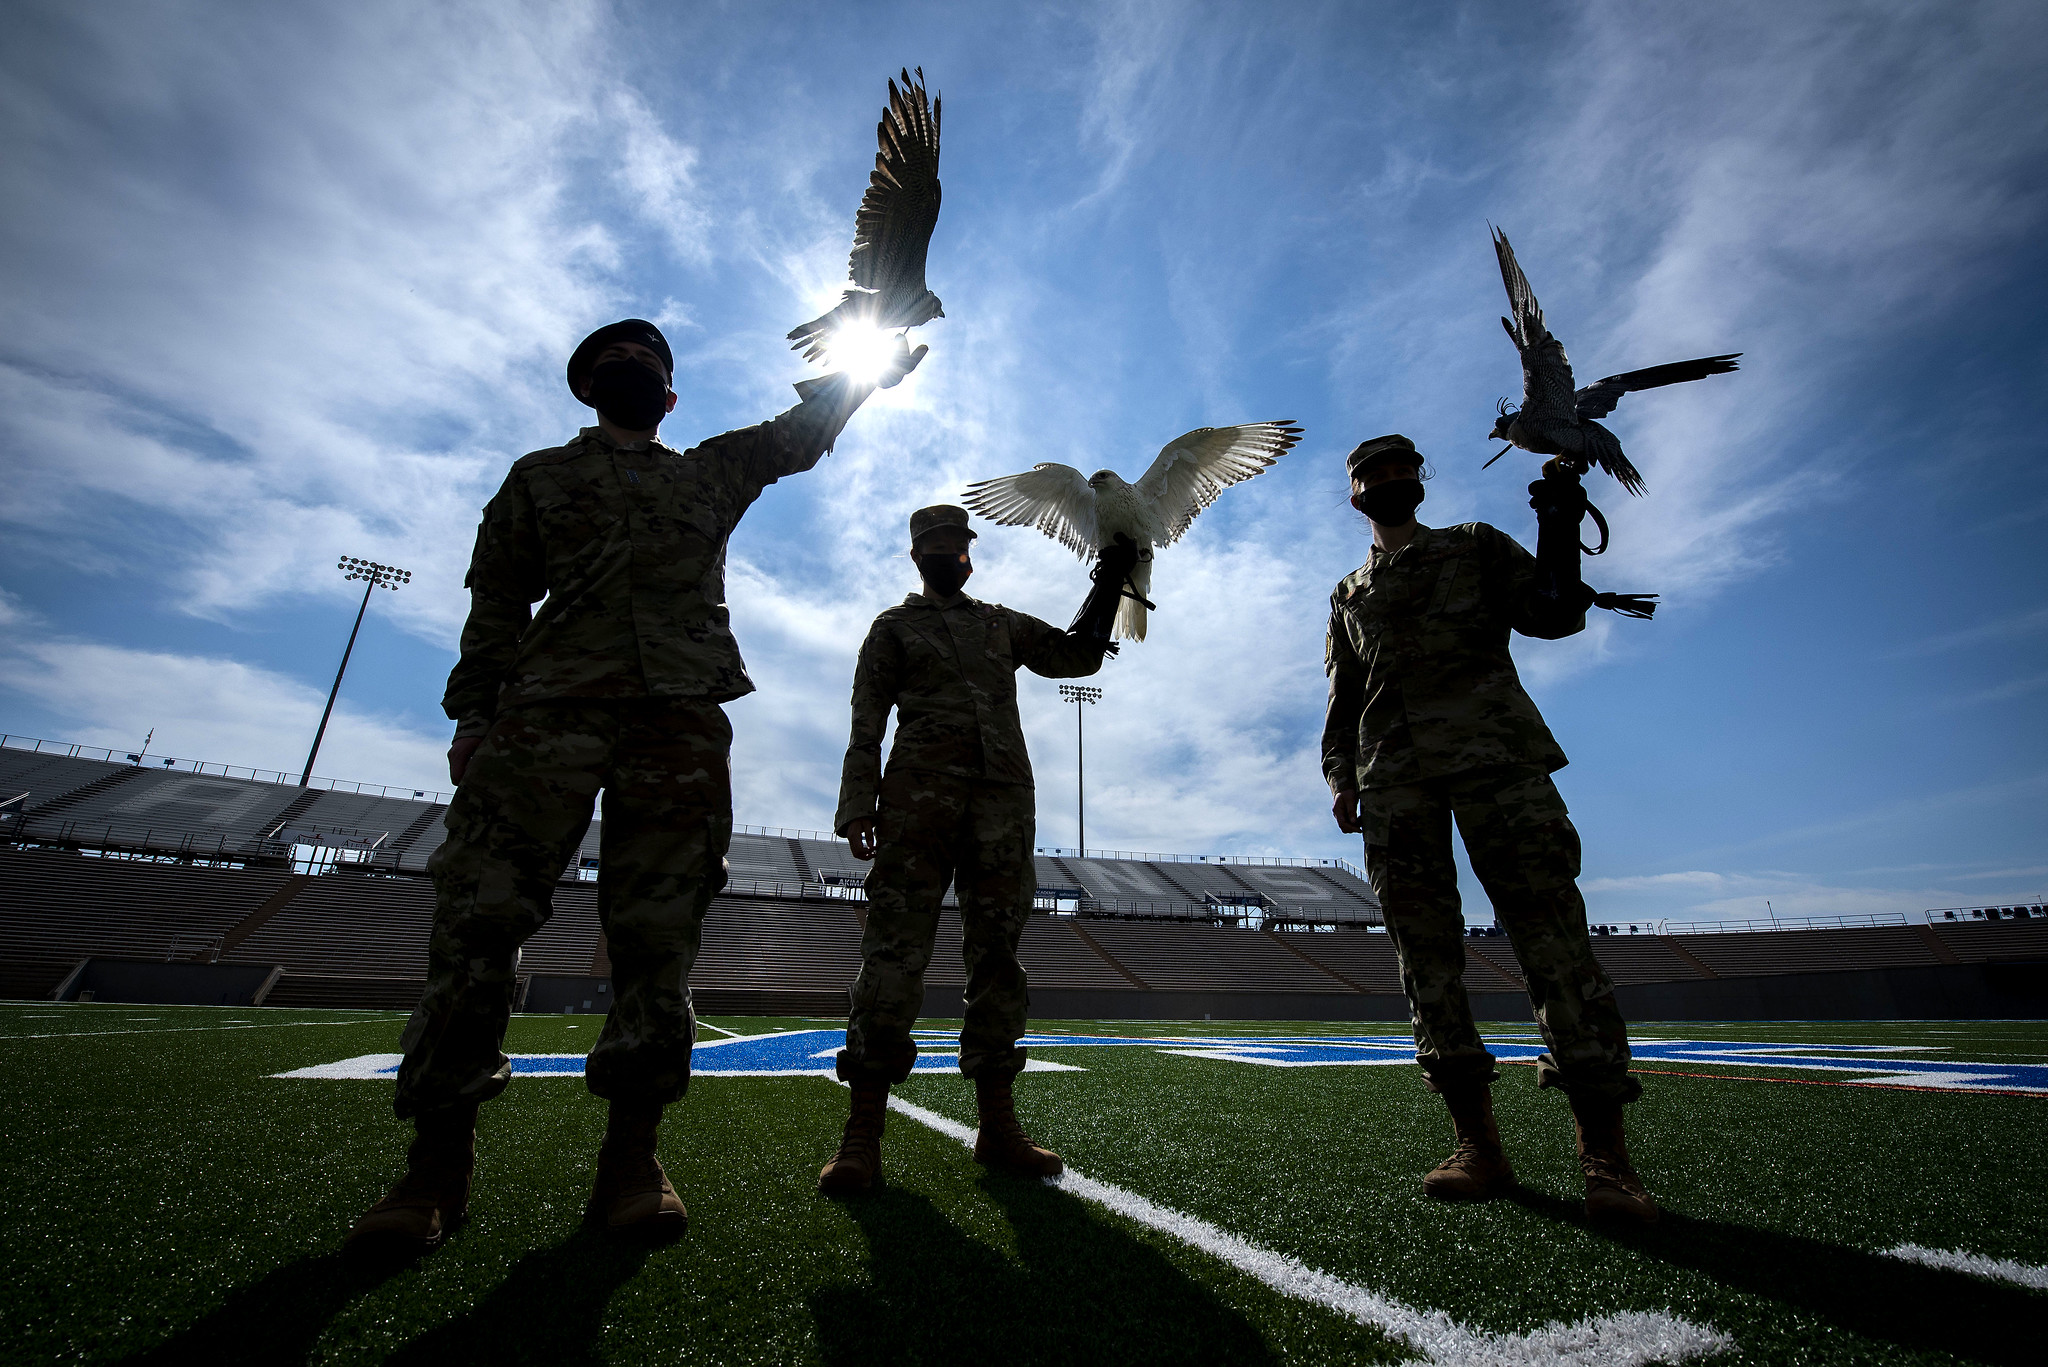 Cadet 2nd Class Kayla Steiner, center, handler of Nova, the newly named 15-week-old full white-phase Gyrfalcon, displays the new mascot of the U.S. Air Force Academy with Cadet 1st Class Seamus Kean, left, and Cadet 3rd Class Sierra Hillard, right. (Joshua Armstrong/Air Force)